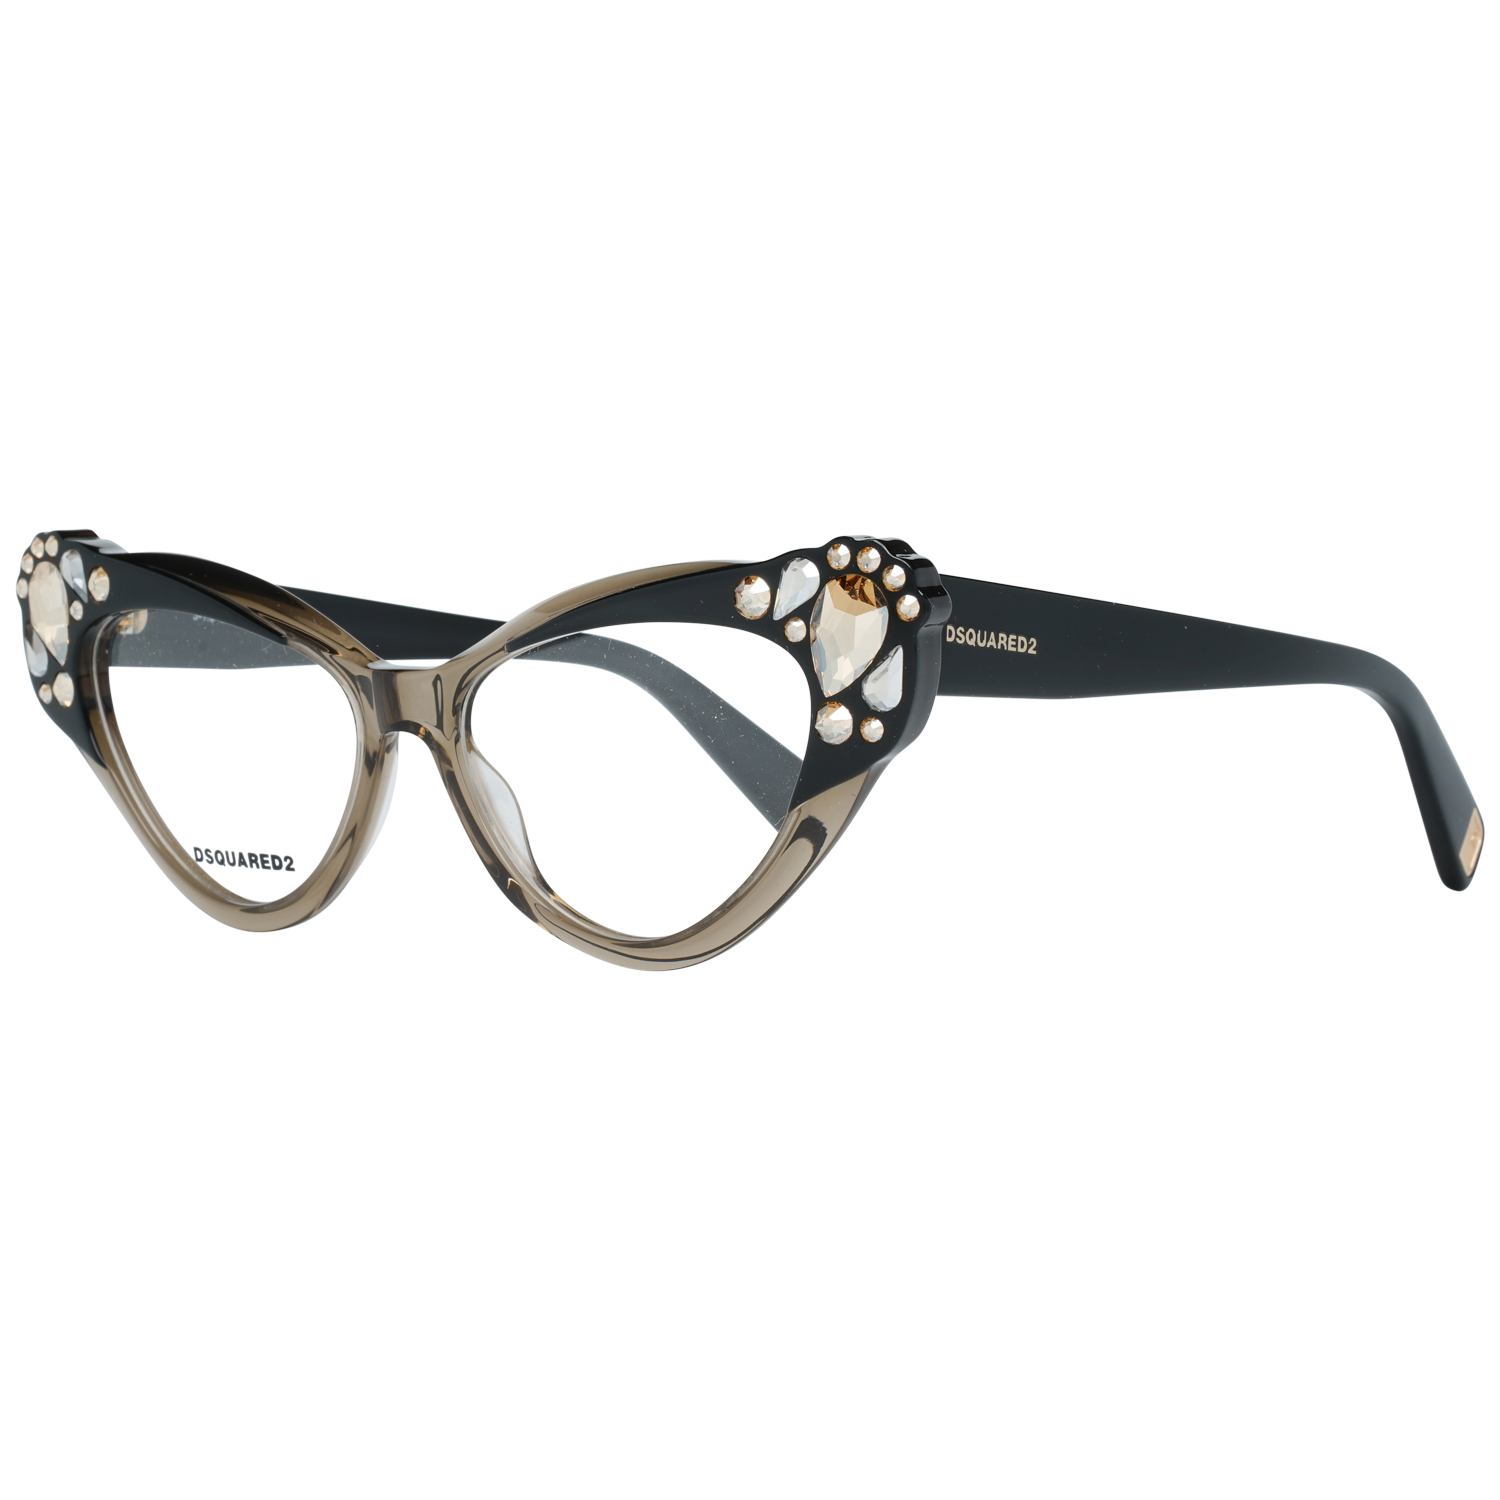 Dsquared2 Optical Frame DQ5290 059 53 Brown